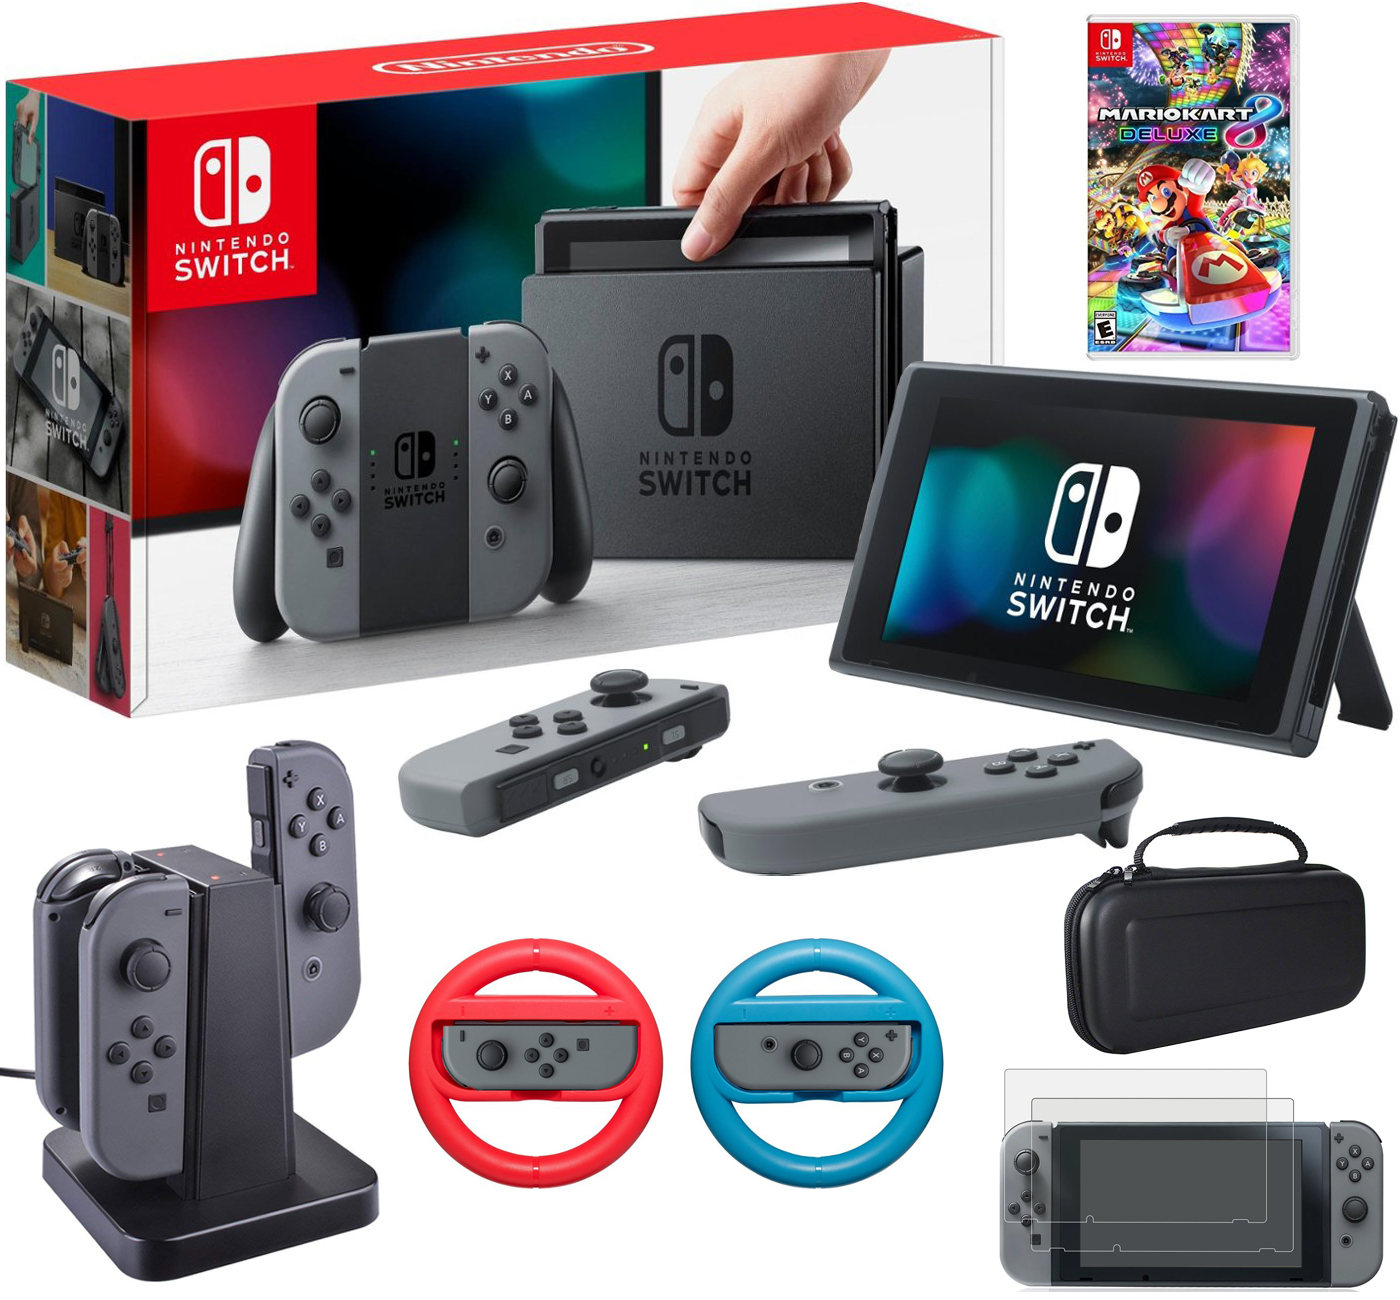 Details About Nintendo Switch 32 Gb Console With Mario Kart 8 Deluxe Accessories Bundle